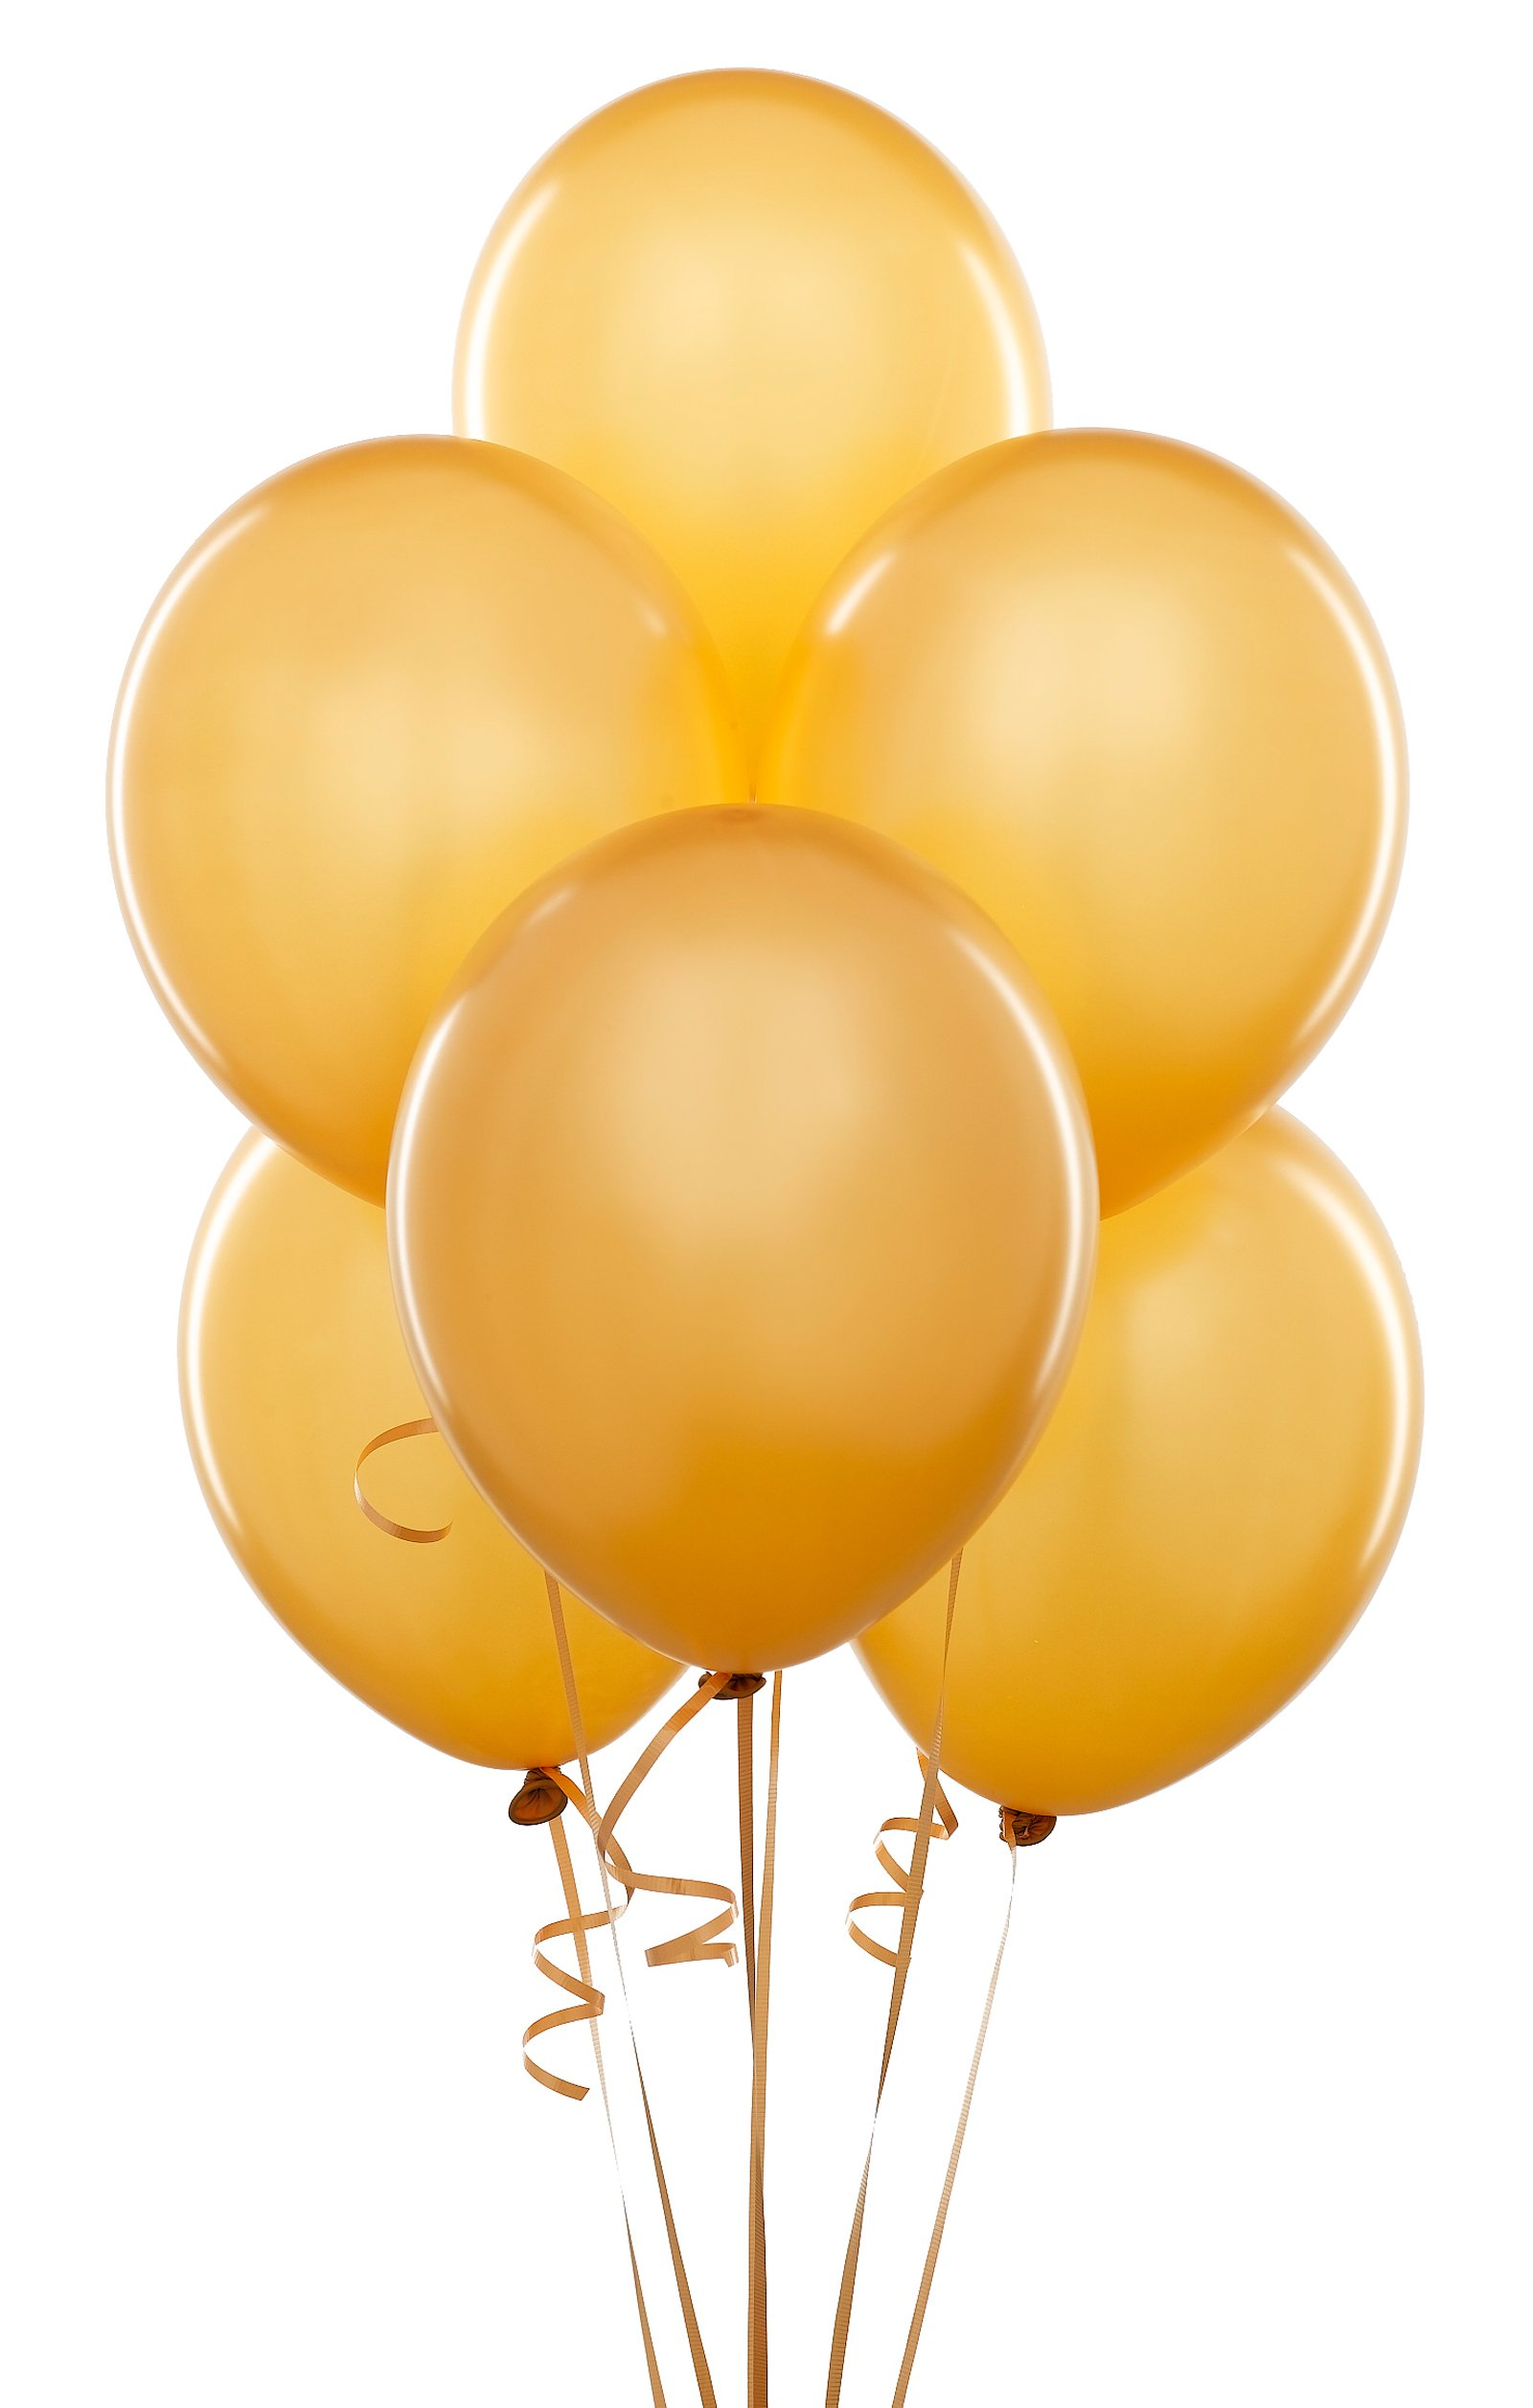 Balloons clipart green and gold.